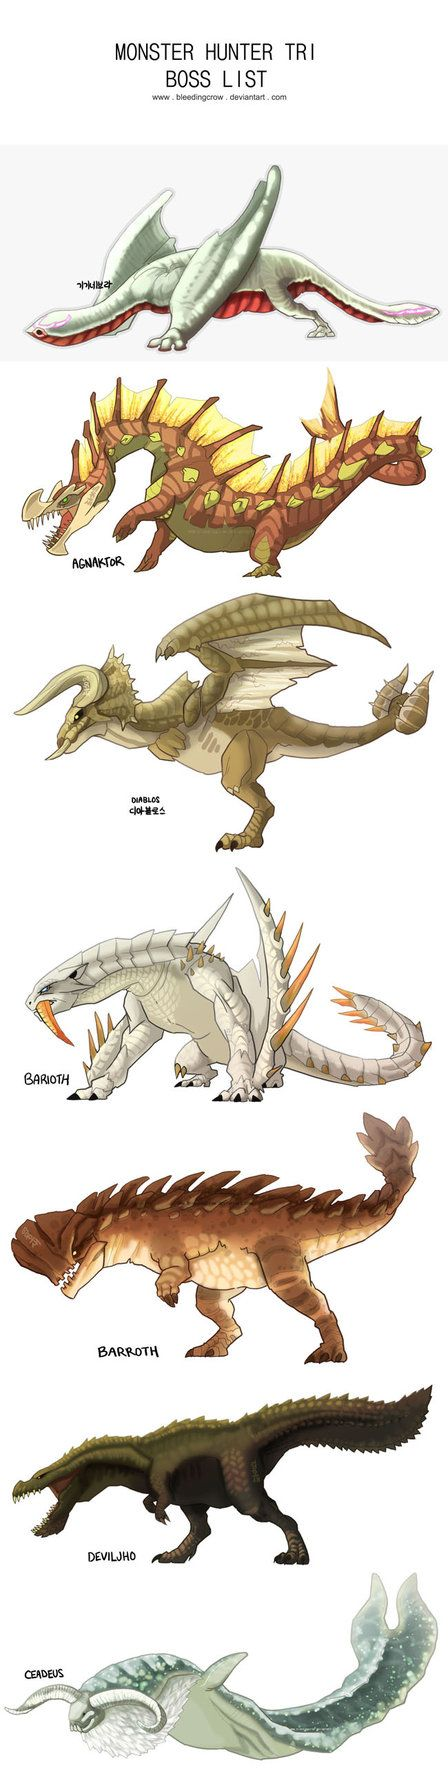 Monster Hunter Tri Boss List By Macawnivore On Deviantart Monster Hunter Monster Hunter Art Beast Creature